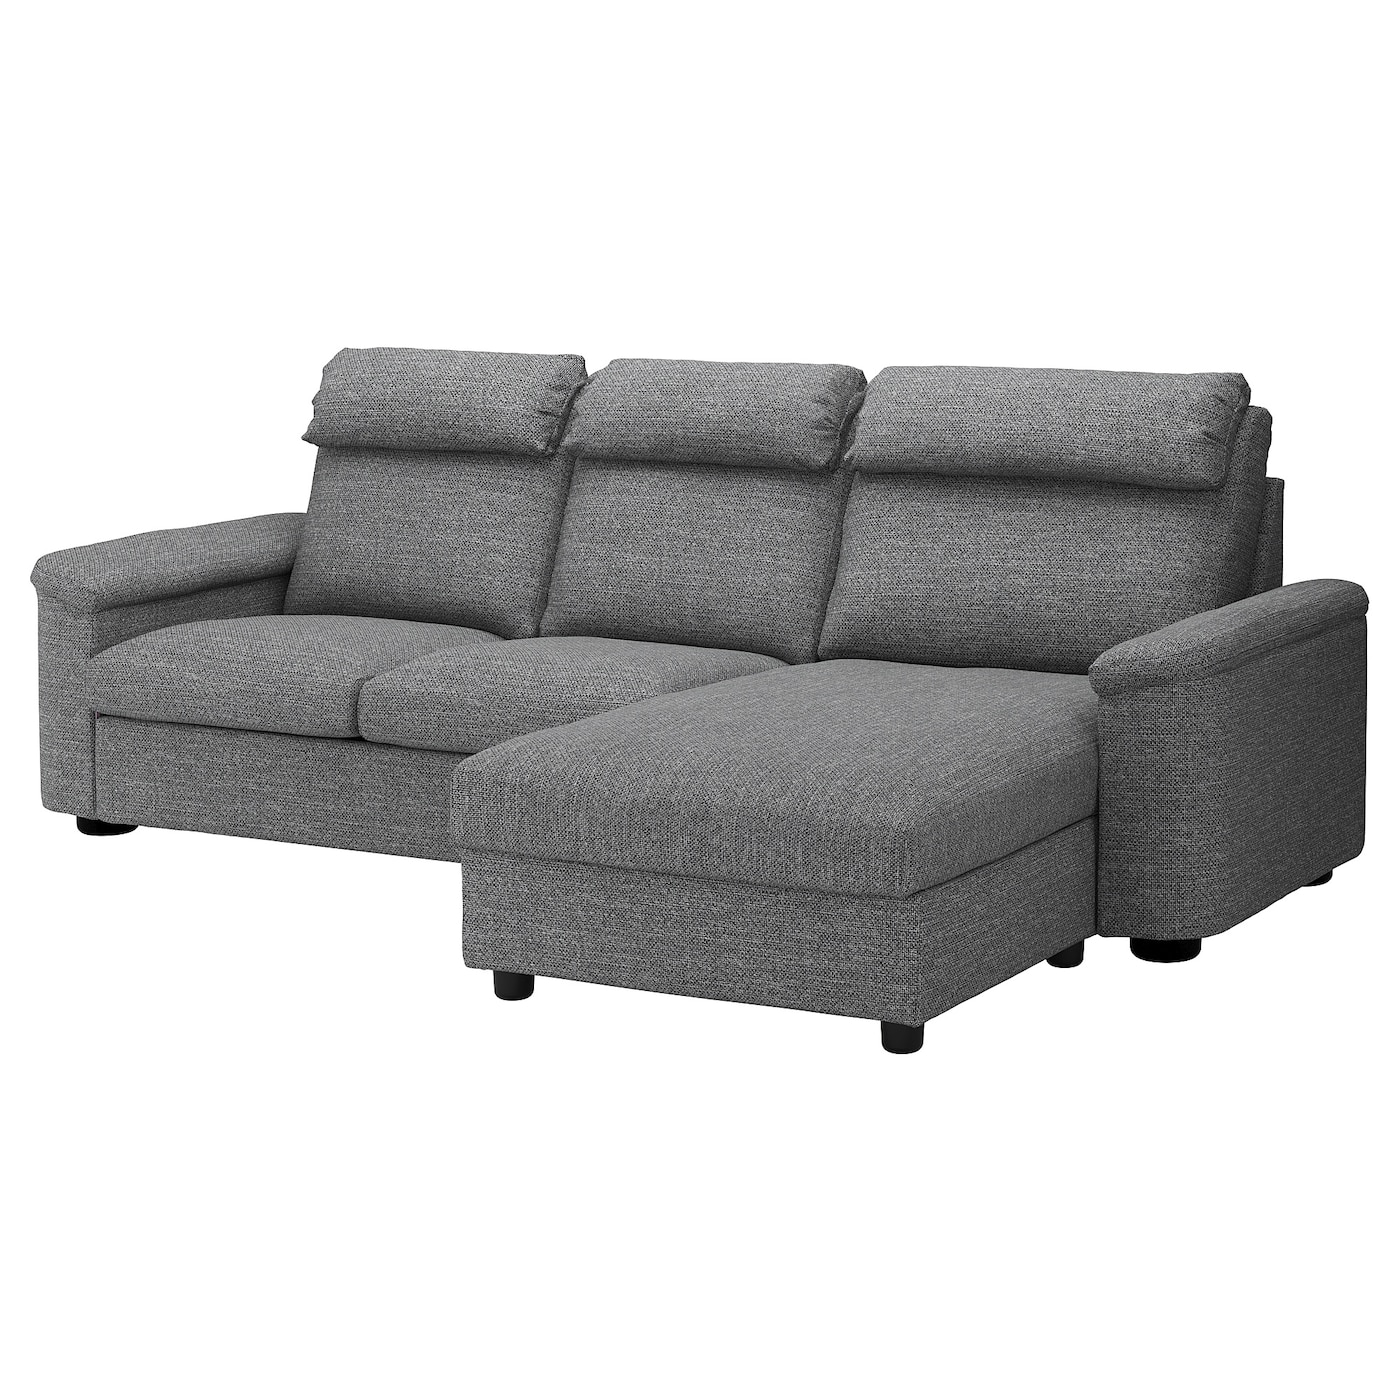 Lidhult 3 Seat Sofa With Chaise